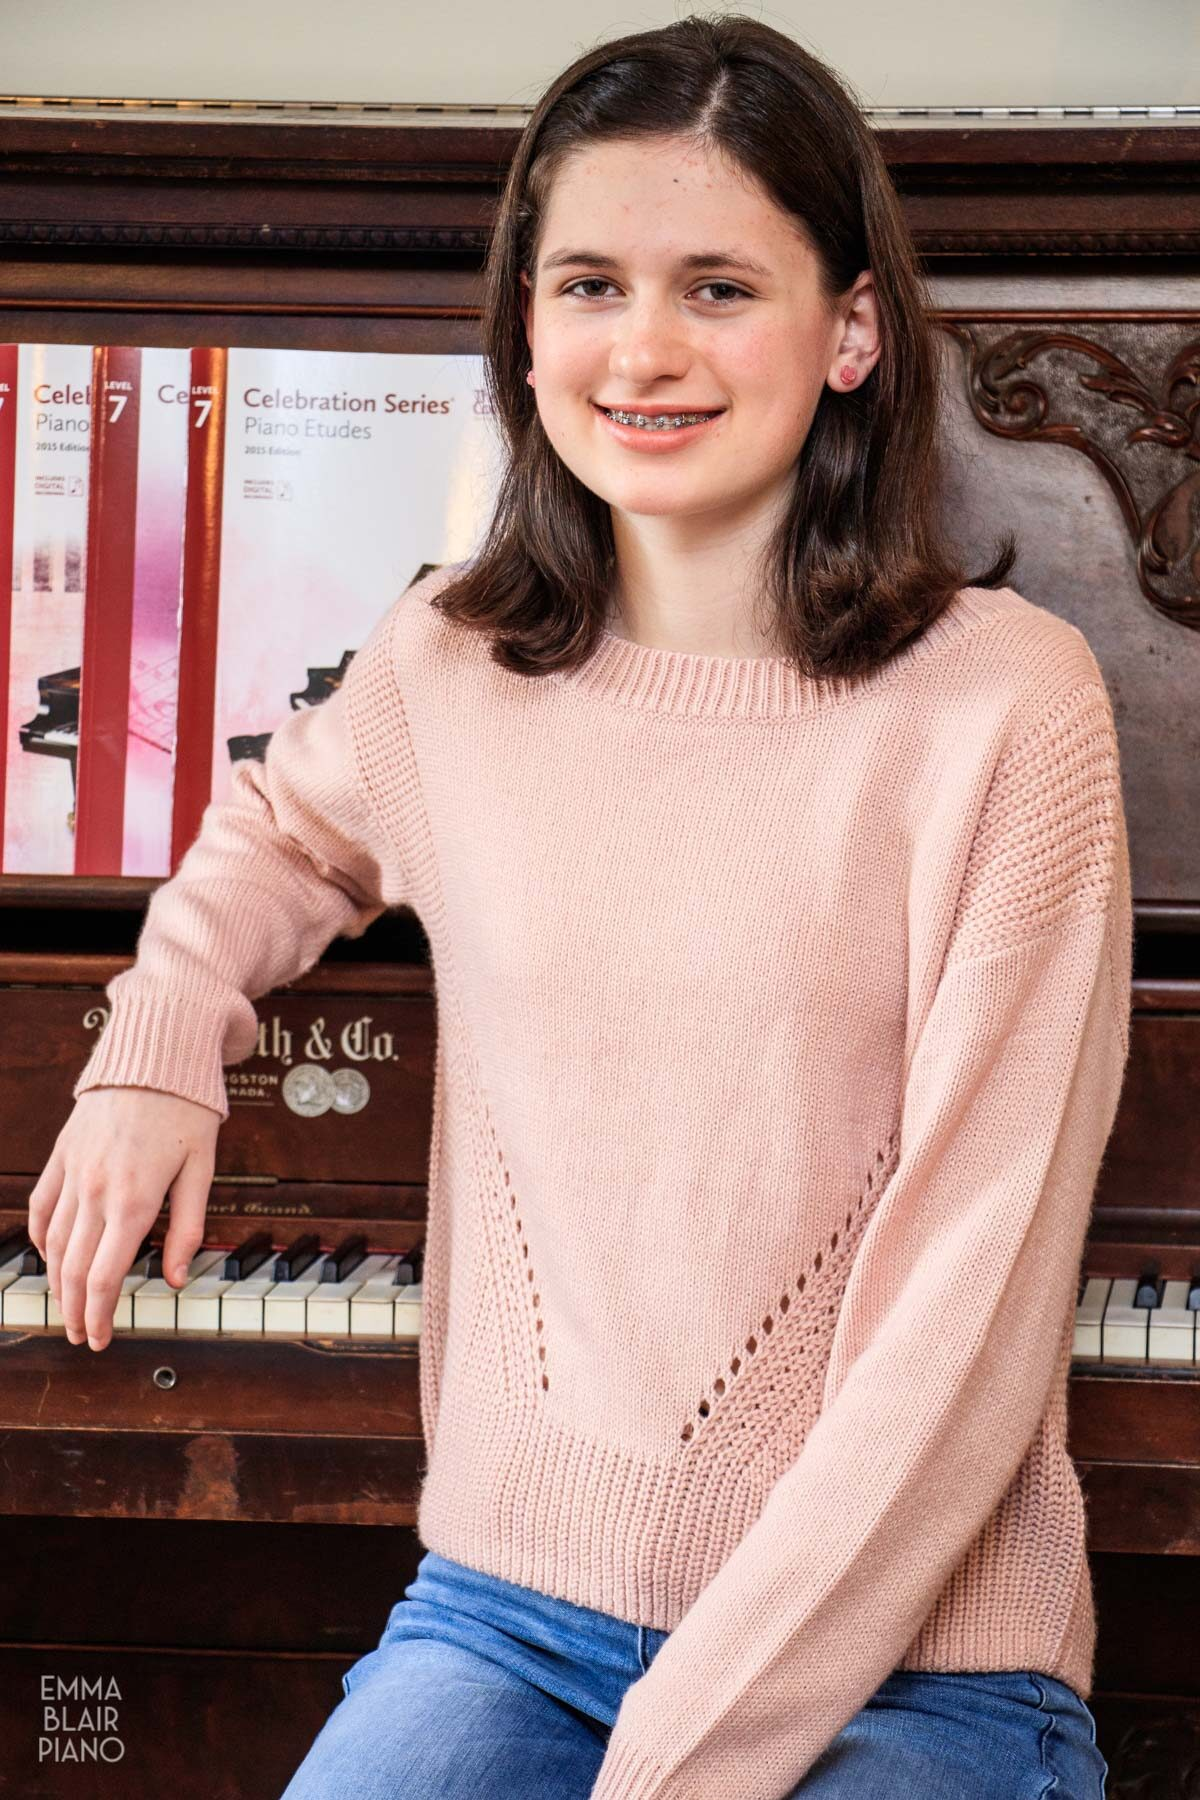 teenage girl leaning on the piano and smiling